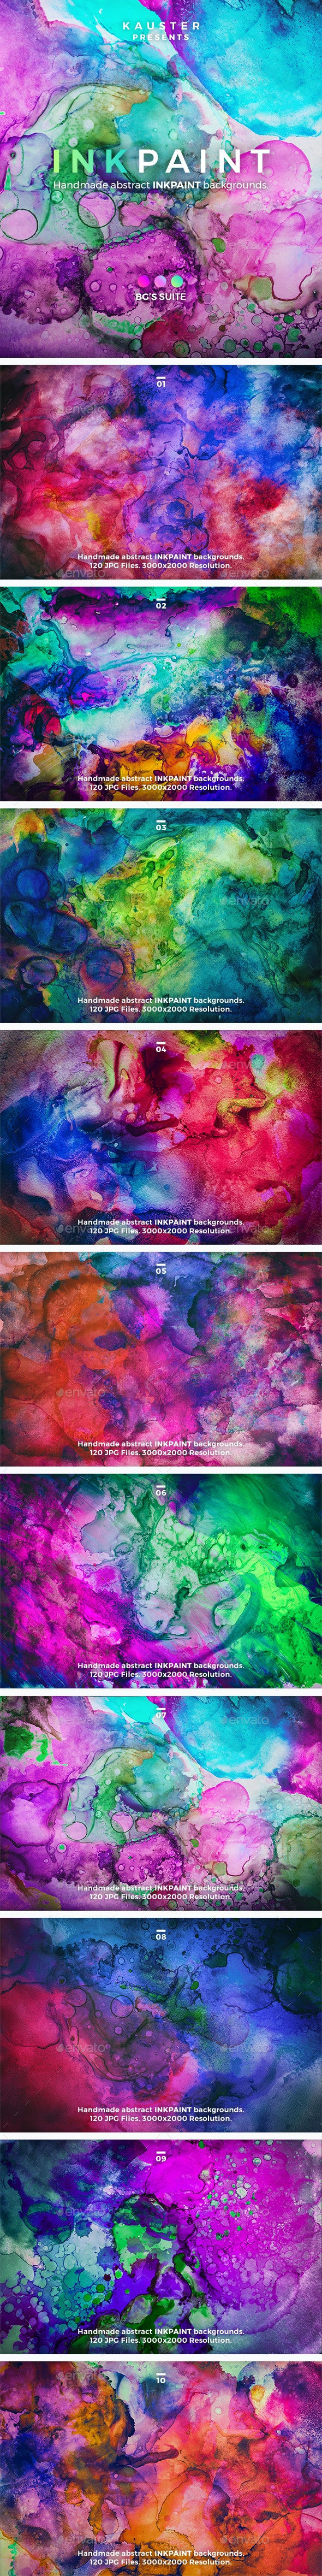 Inkpaint Backgrounds - Abstract Backgrounds